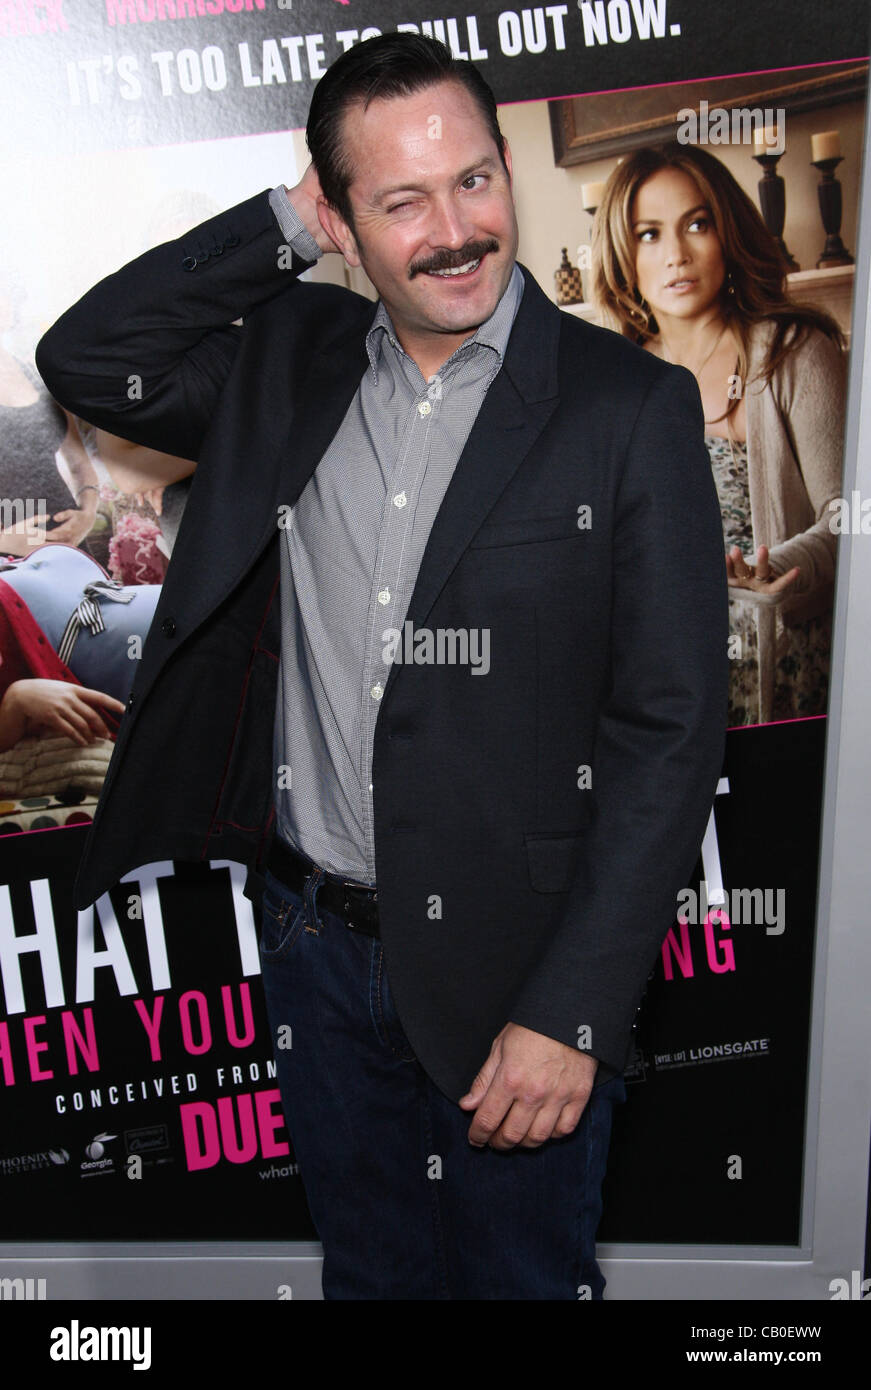 TOM LENNON WHAT TO EXPECT WHEN YOU'RE EXPECTING. LOS ANGELES PREMIERE HOLLYWOOD LOS ANGELES CALIFORNIA USA 14 - Stock Image